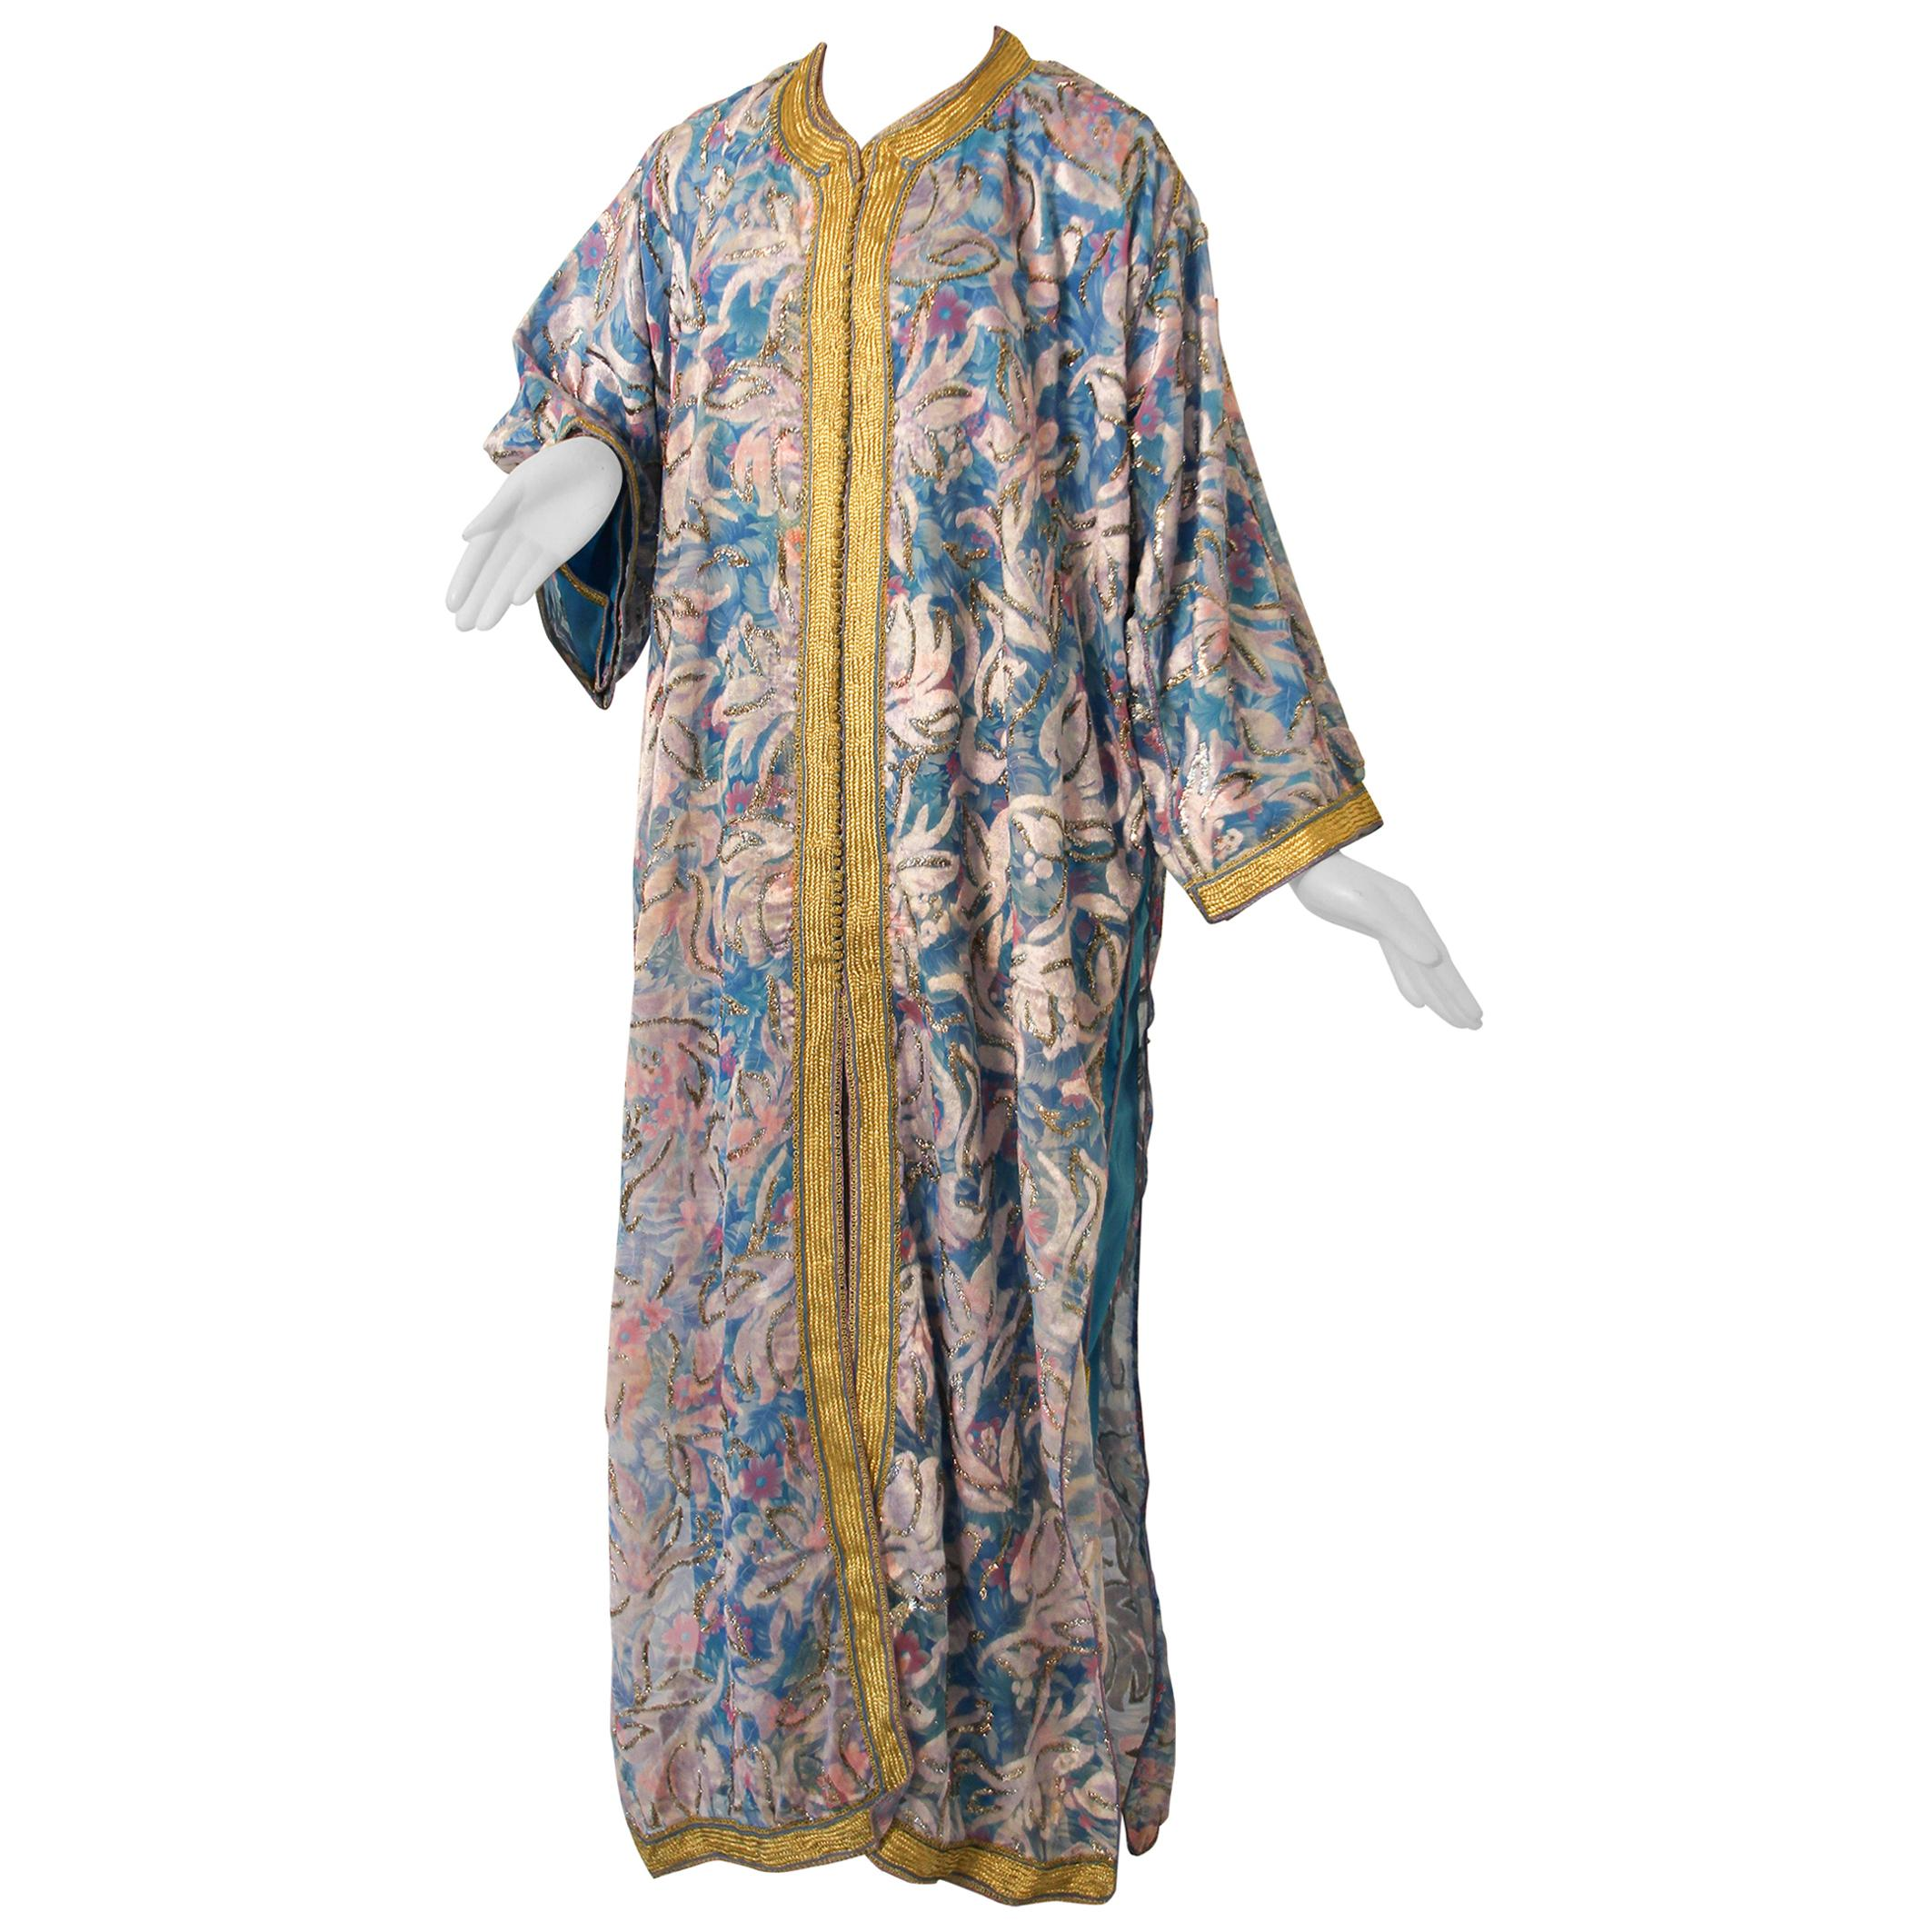 Moroccan Kaftan in Turquoise and Gold Floral Brocade Metallic Lame